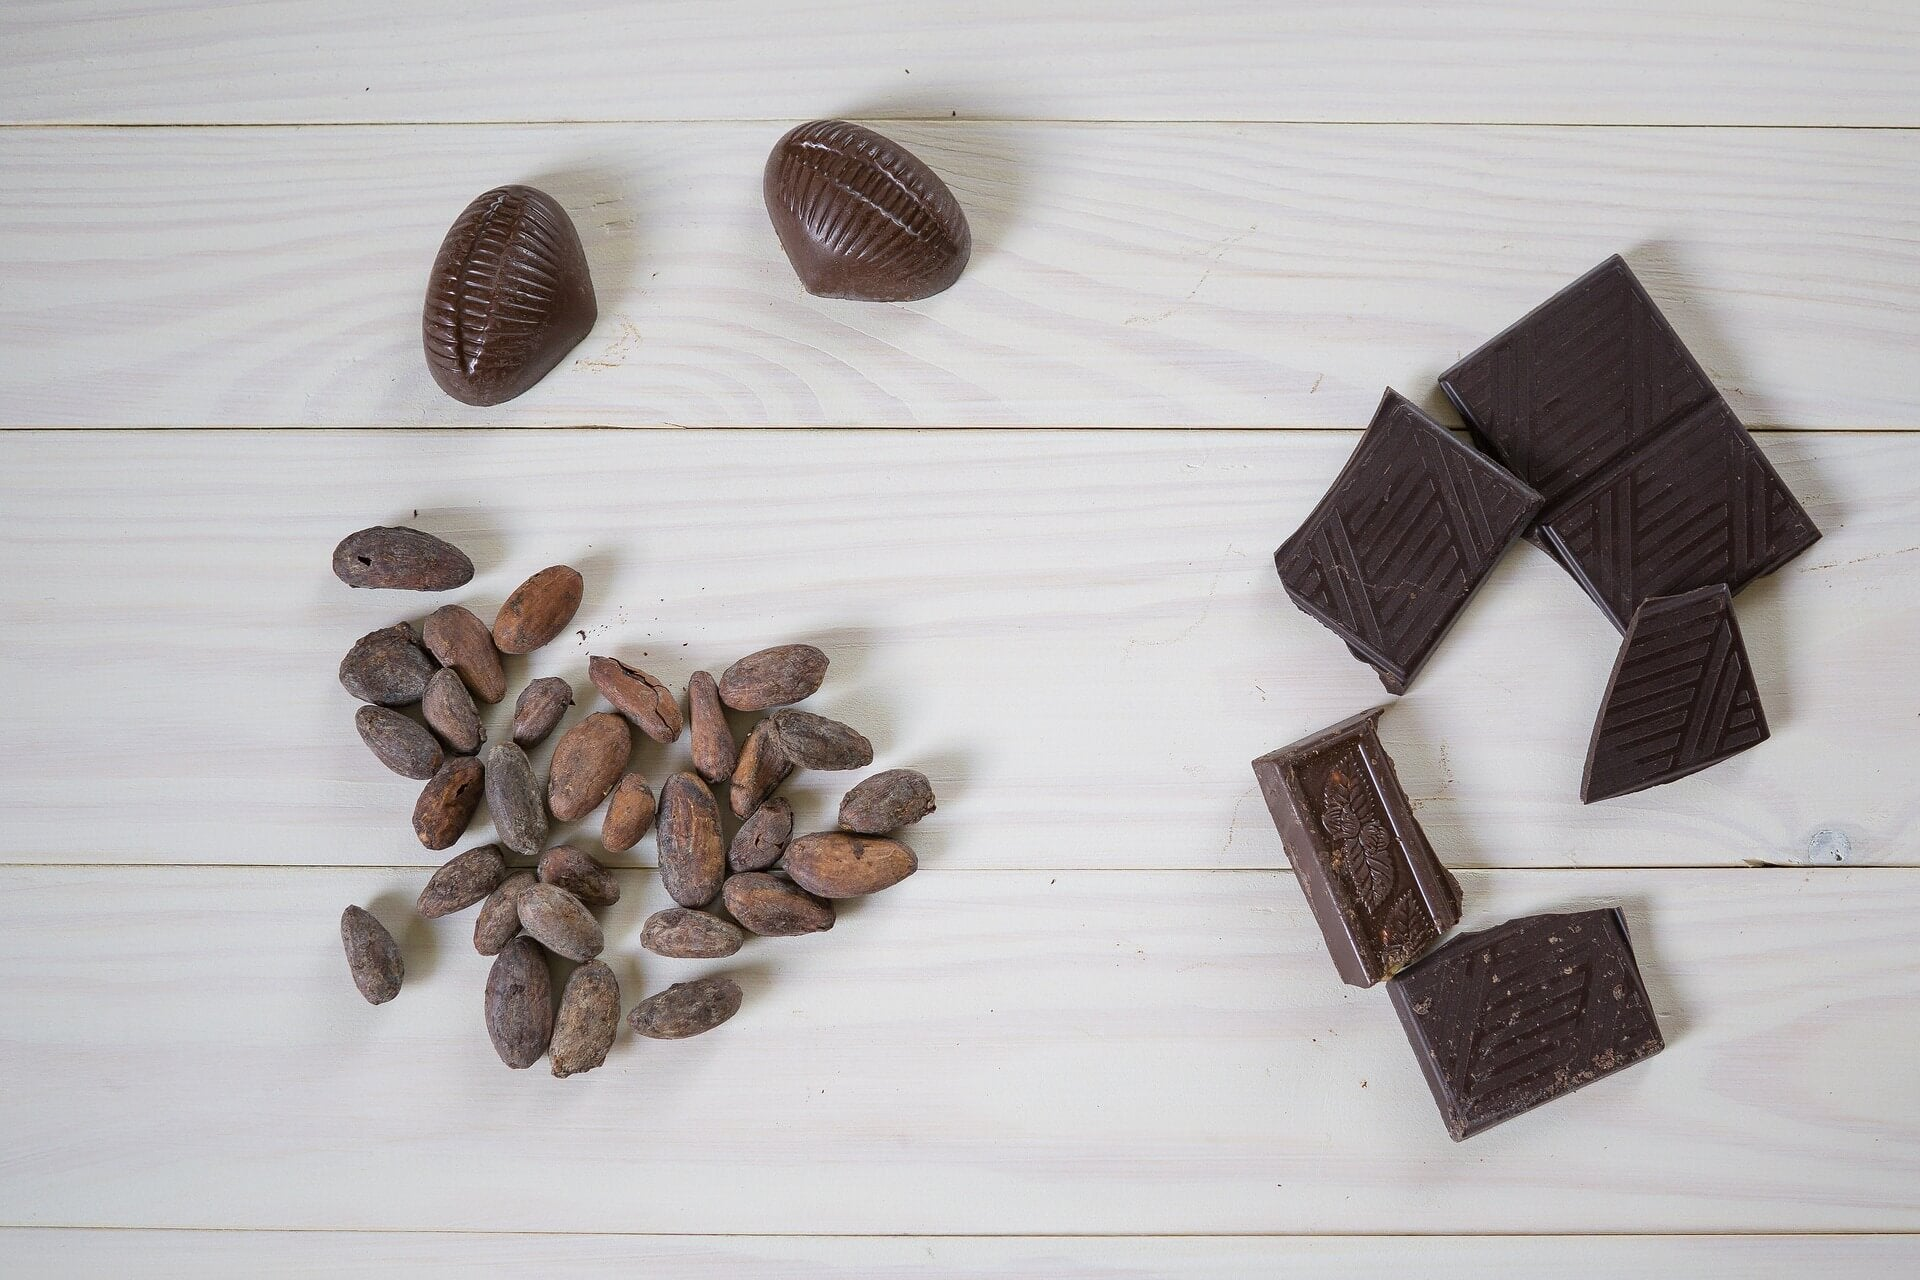 Cocoa beans and broken pieces of dark chocolate on a white wooden surface